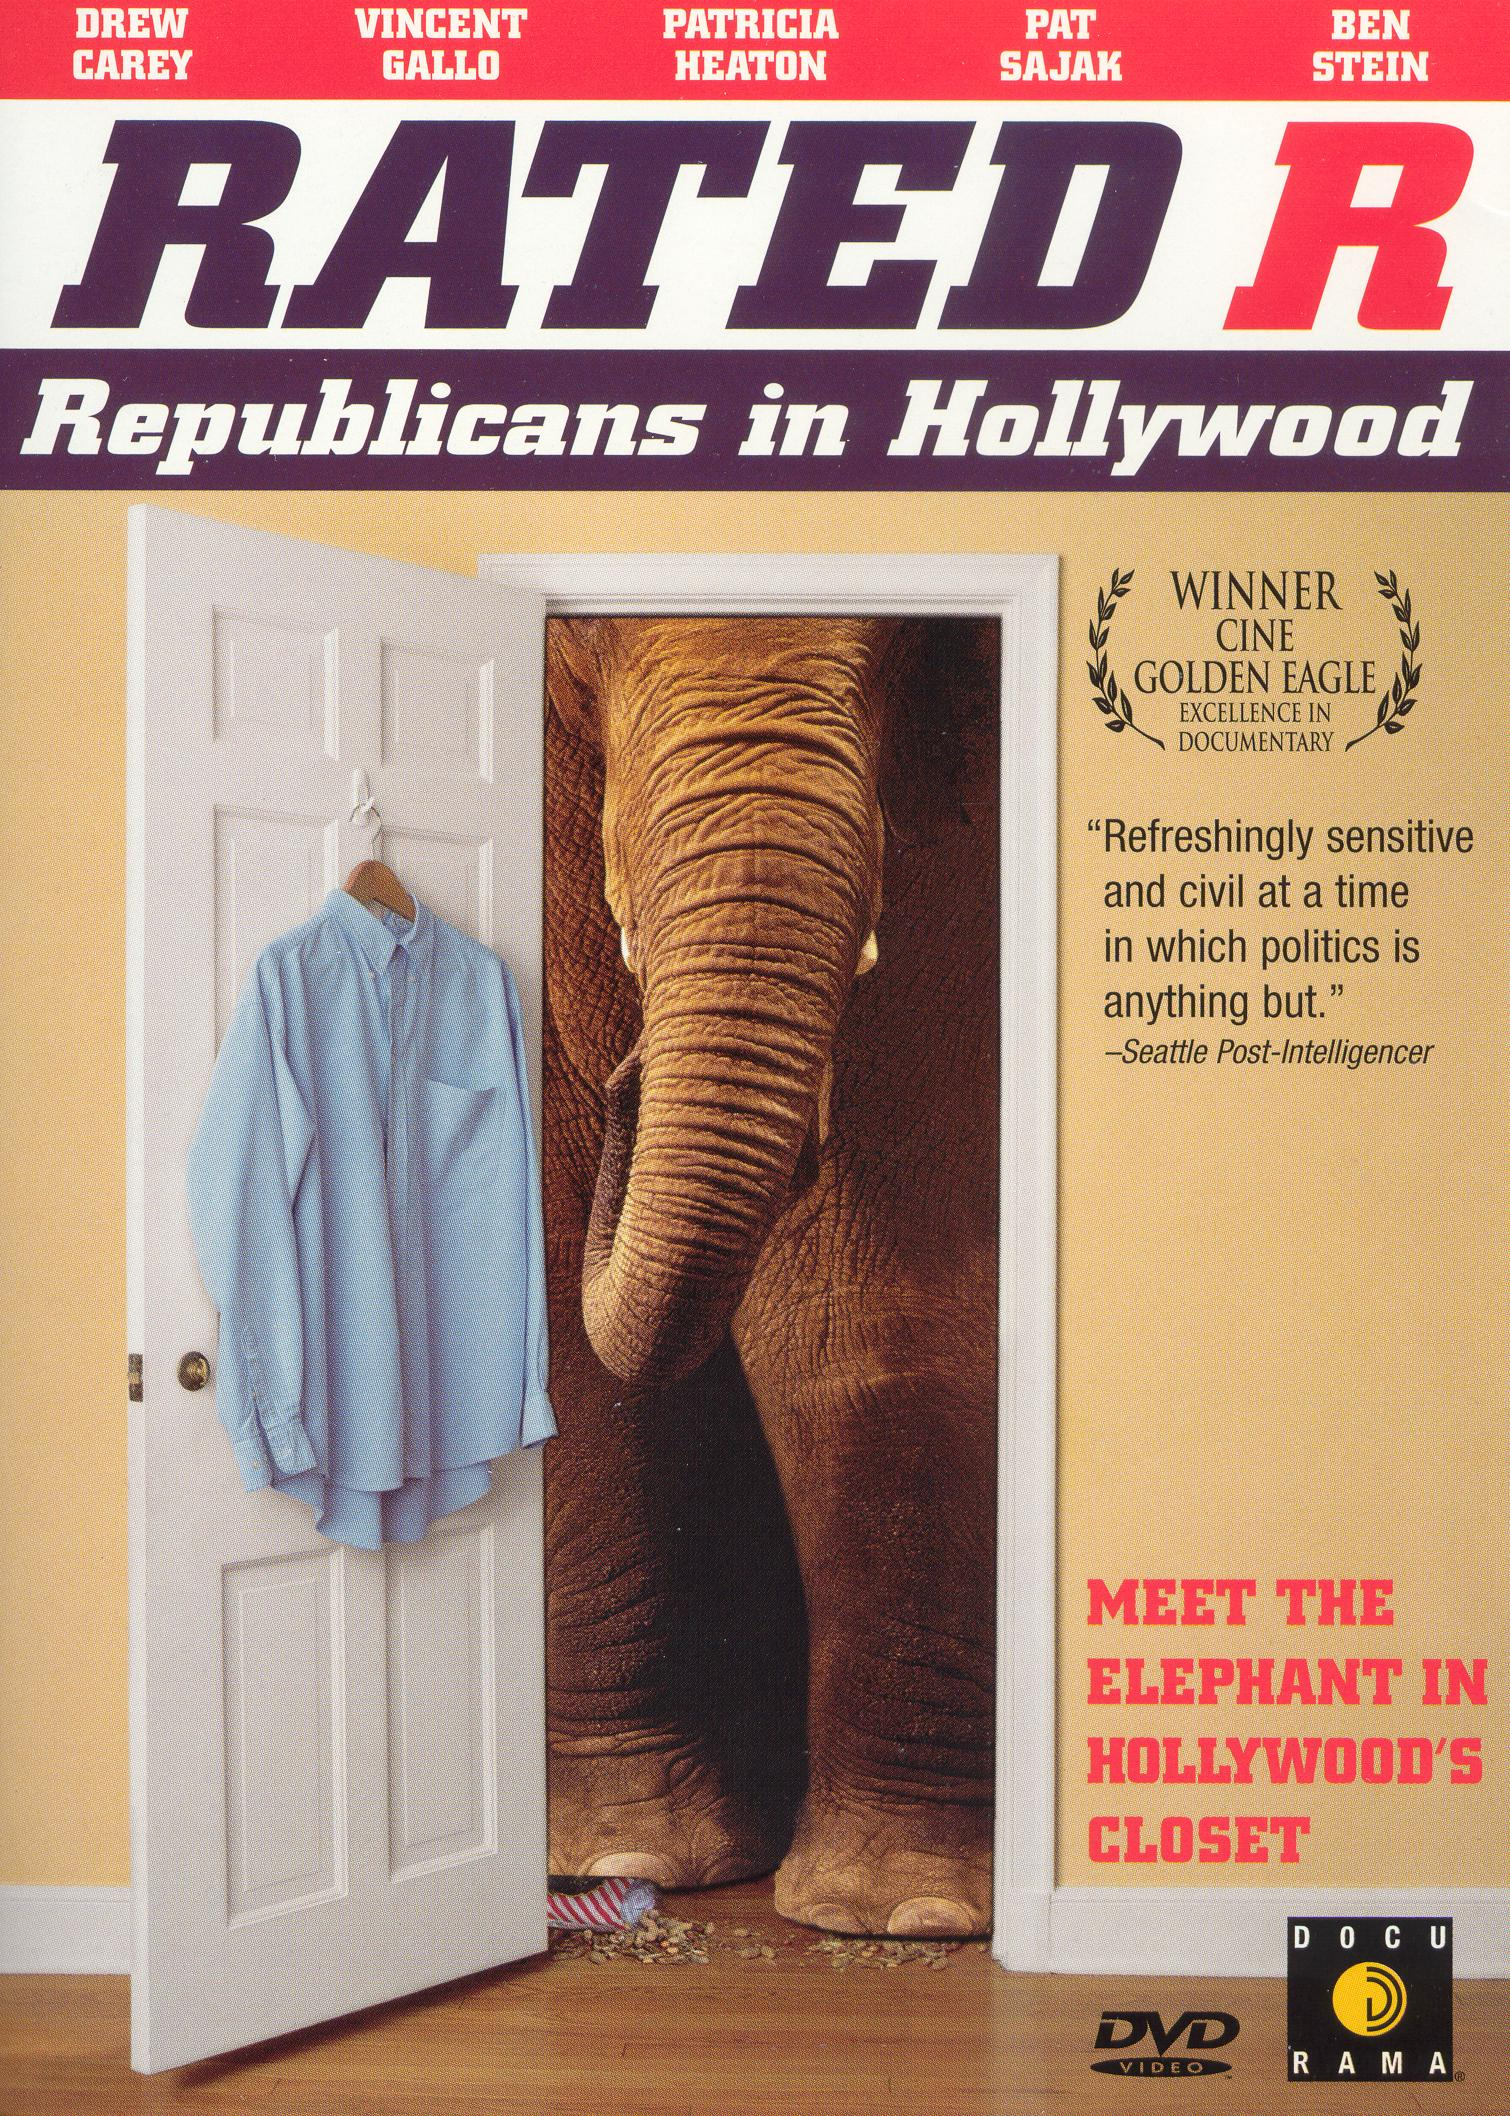 Rated R: Republicans in Hollywood